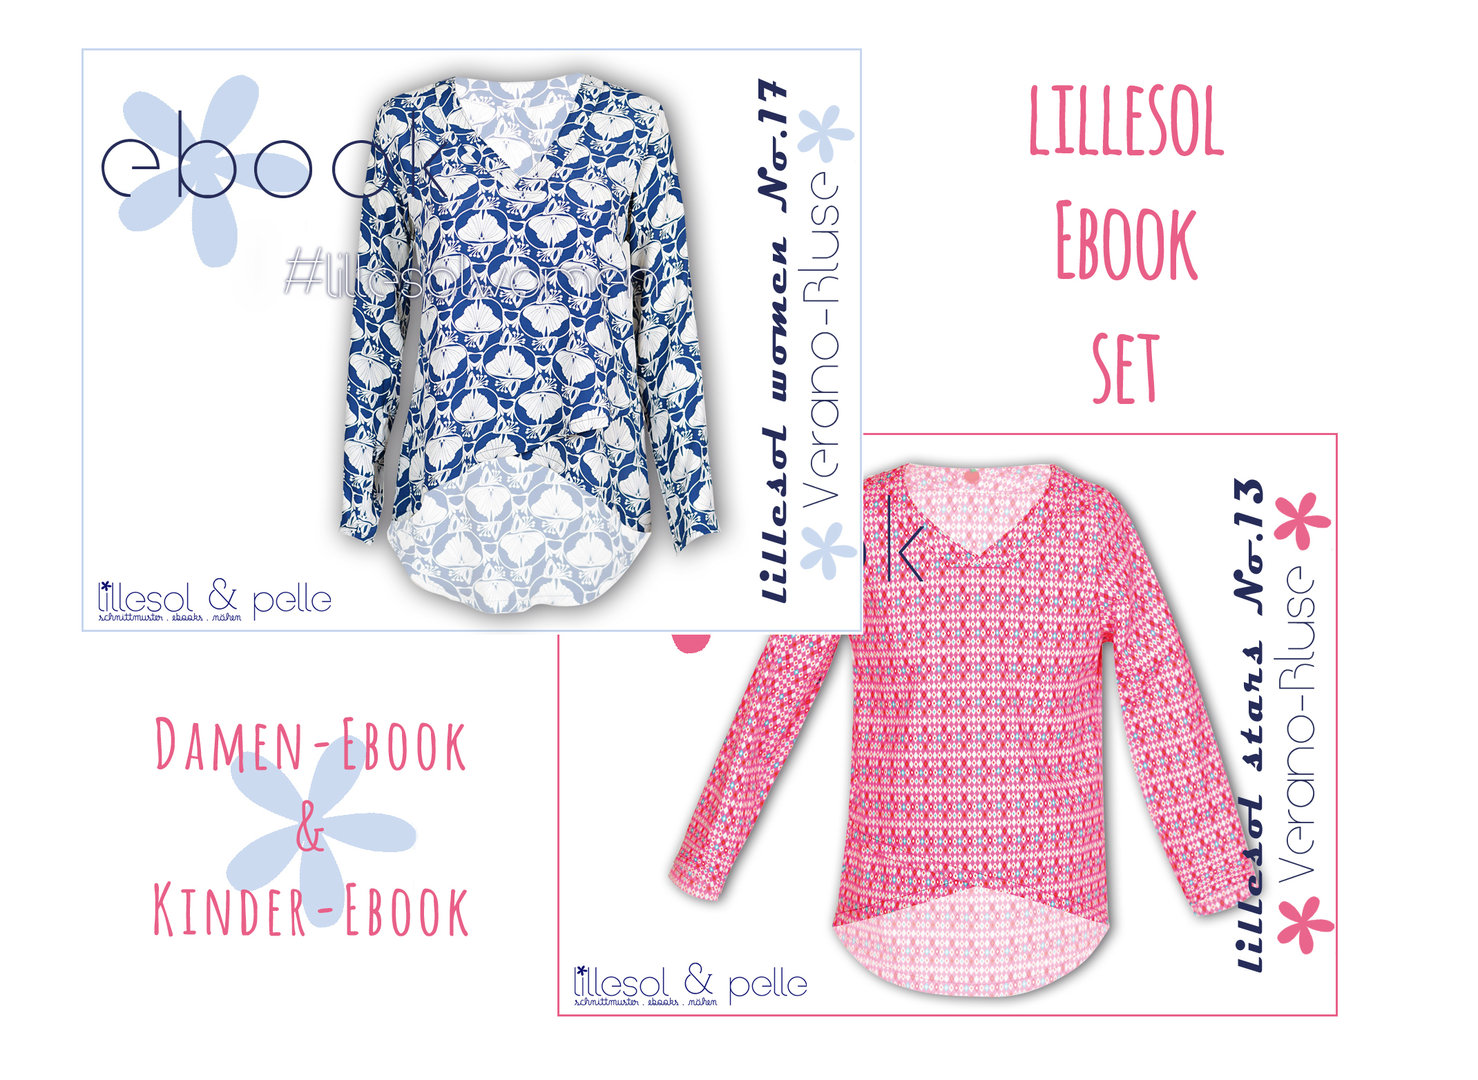 lillesol ebook set stars No.13 und women No.17 *mit Video-Nähanleitung*